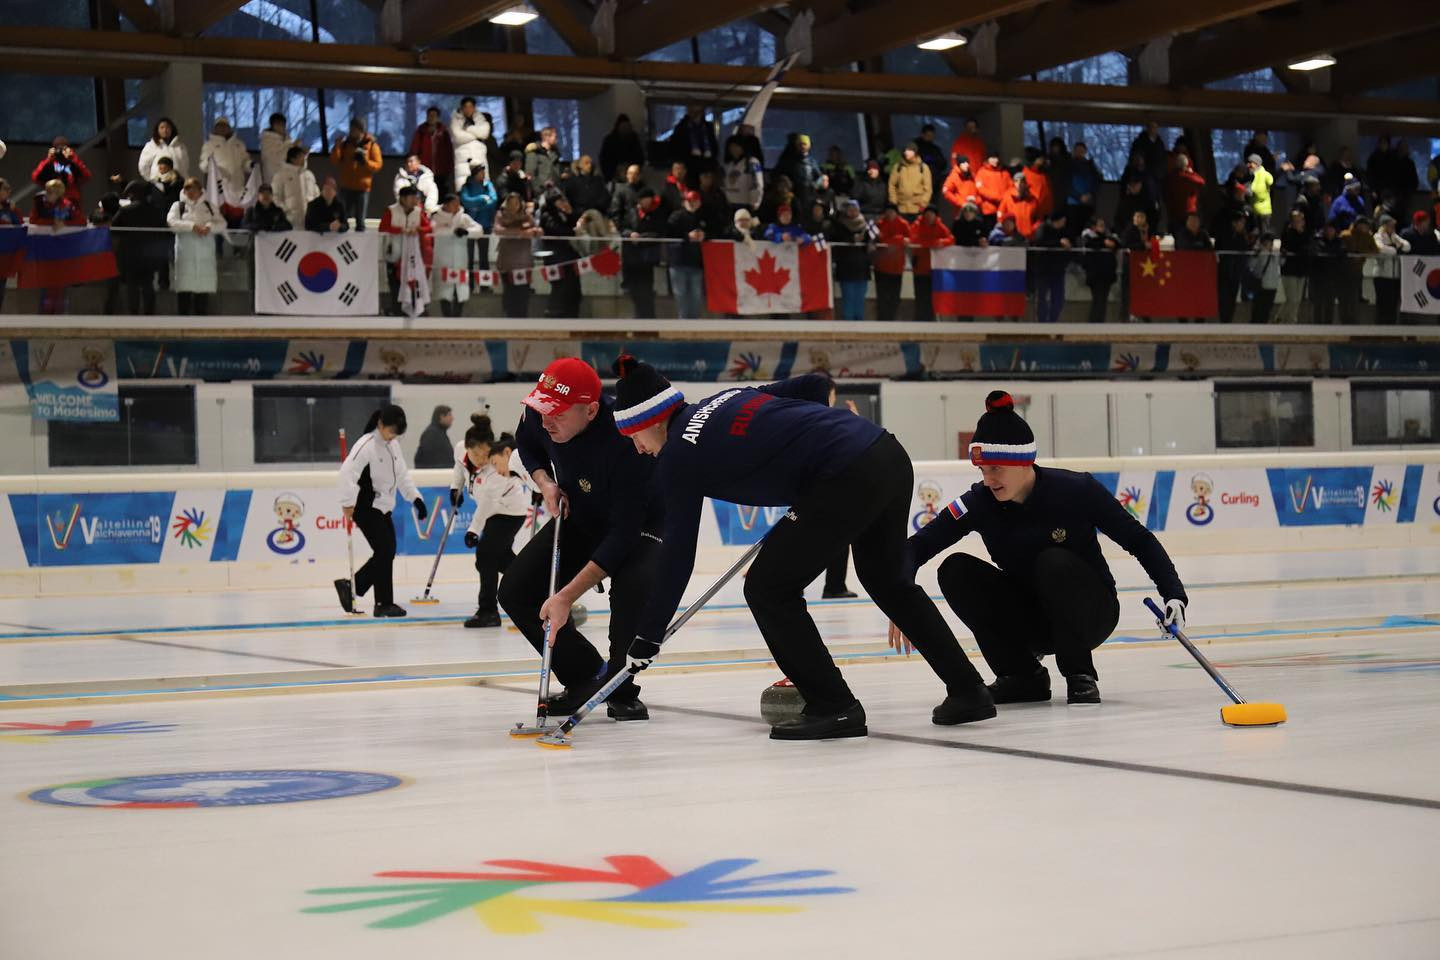 Russia and China through to men's and women's curling finals at Winter Deaflympics